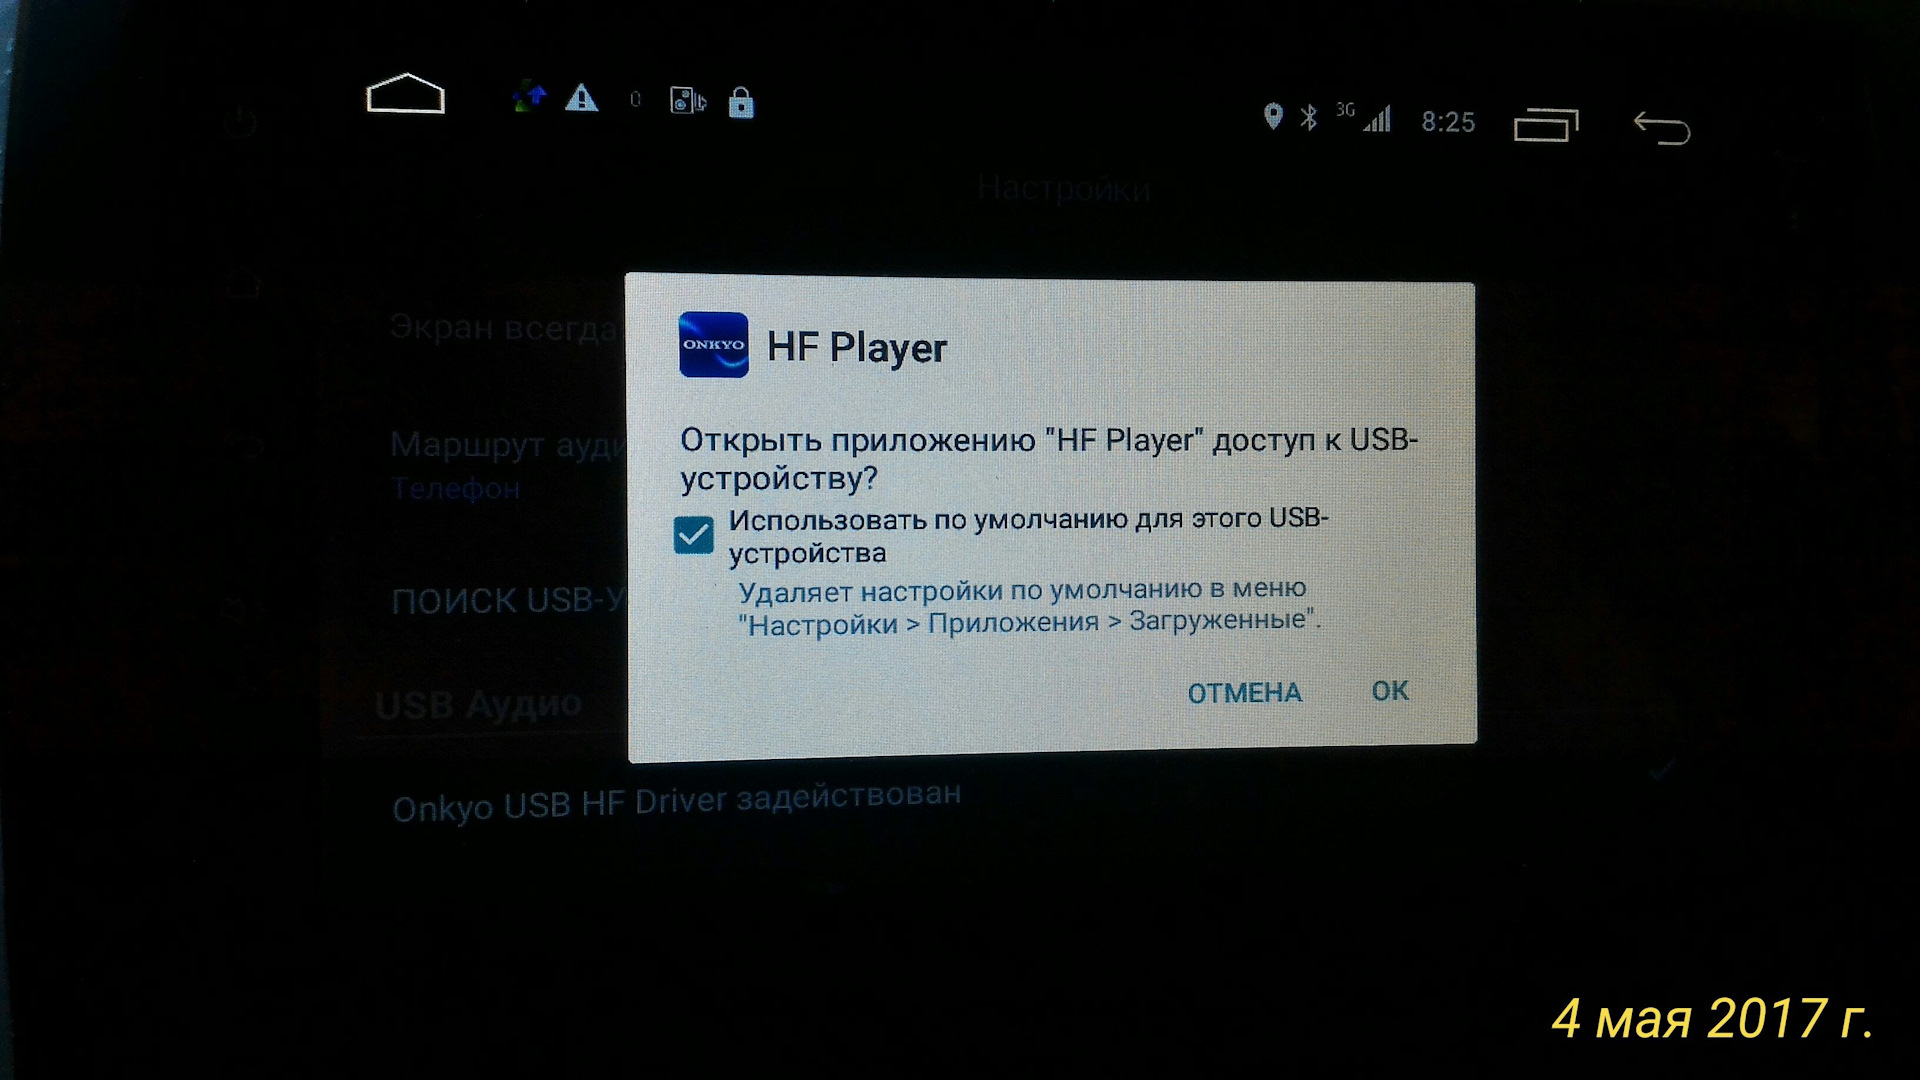 onkyo hf player настройка